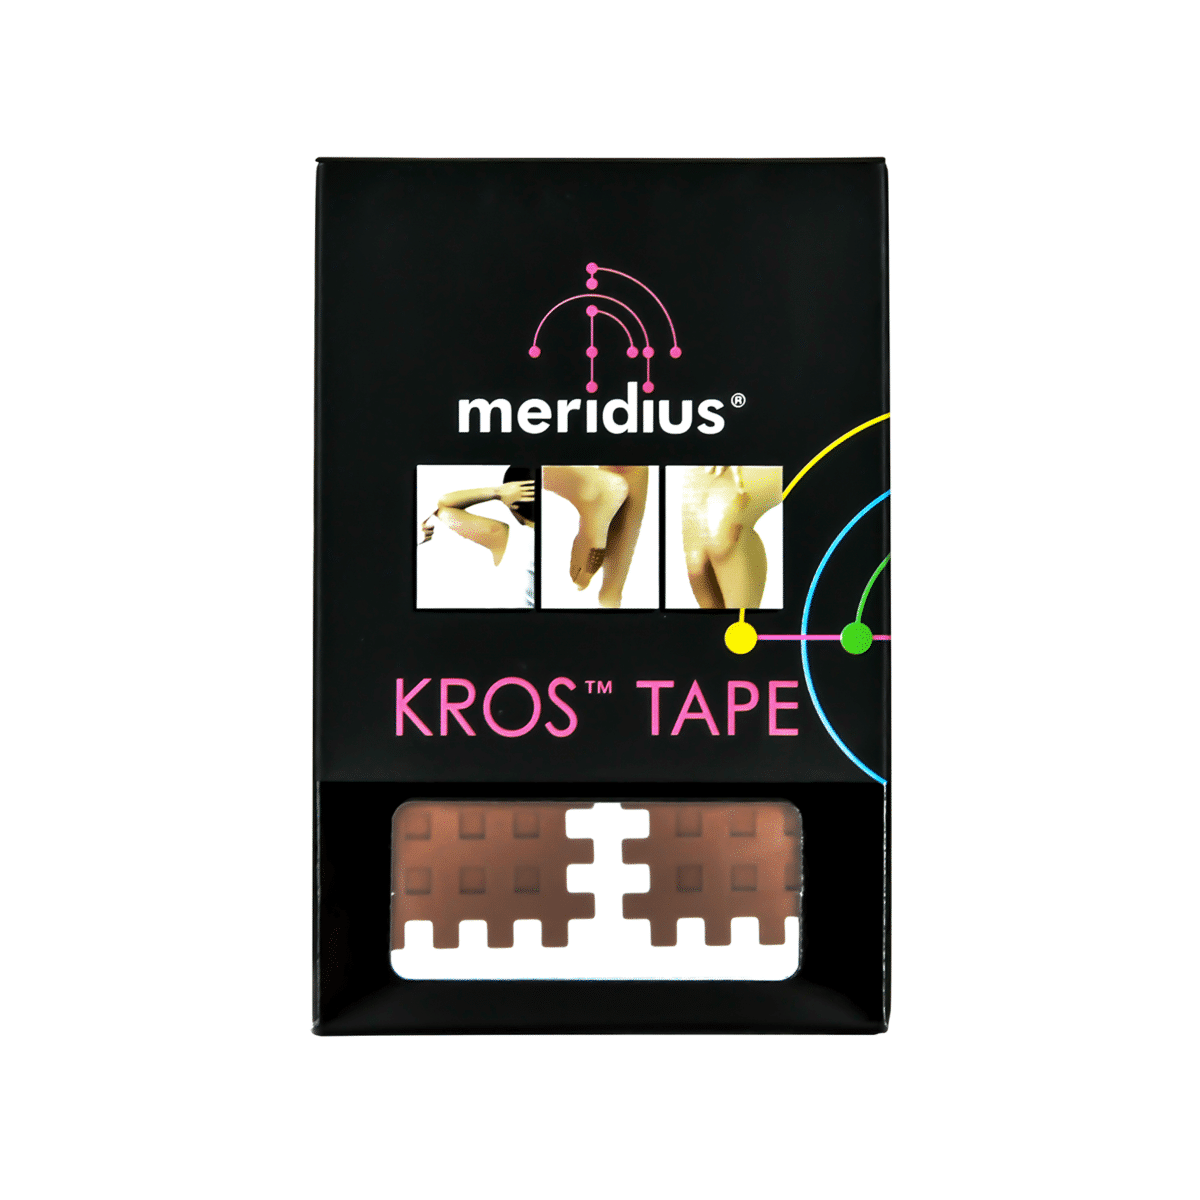 Meridius-Medical-Kros-Tape-Packaging